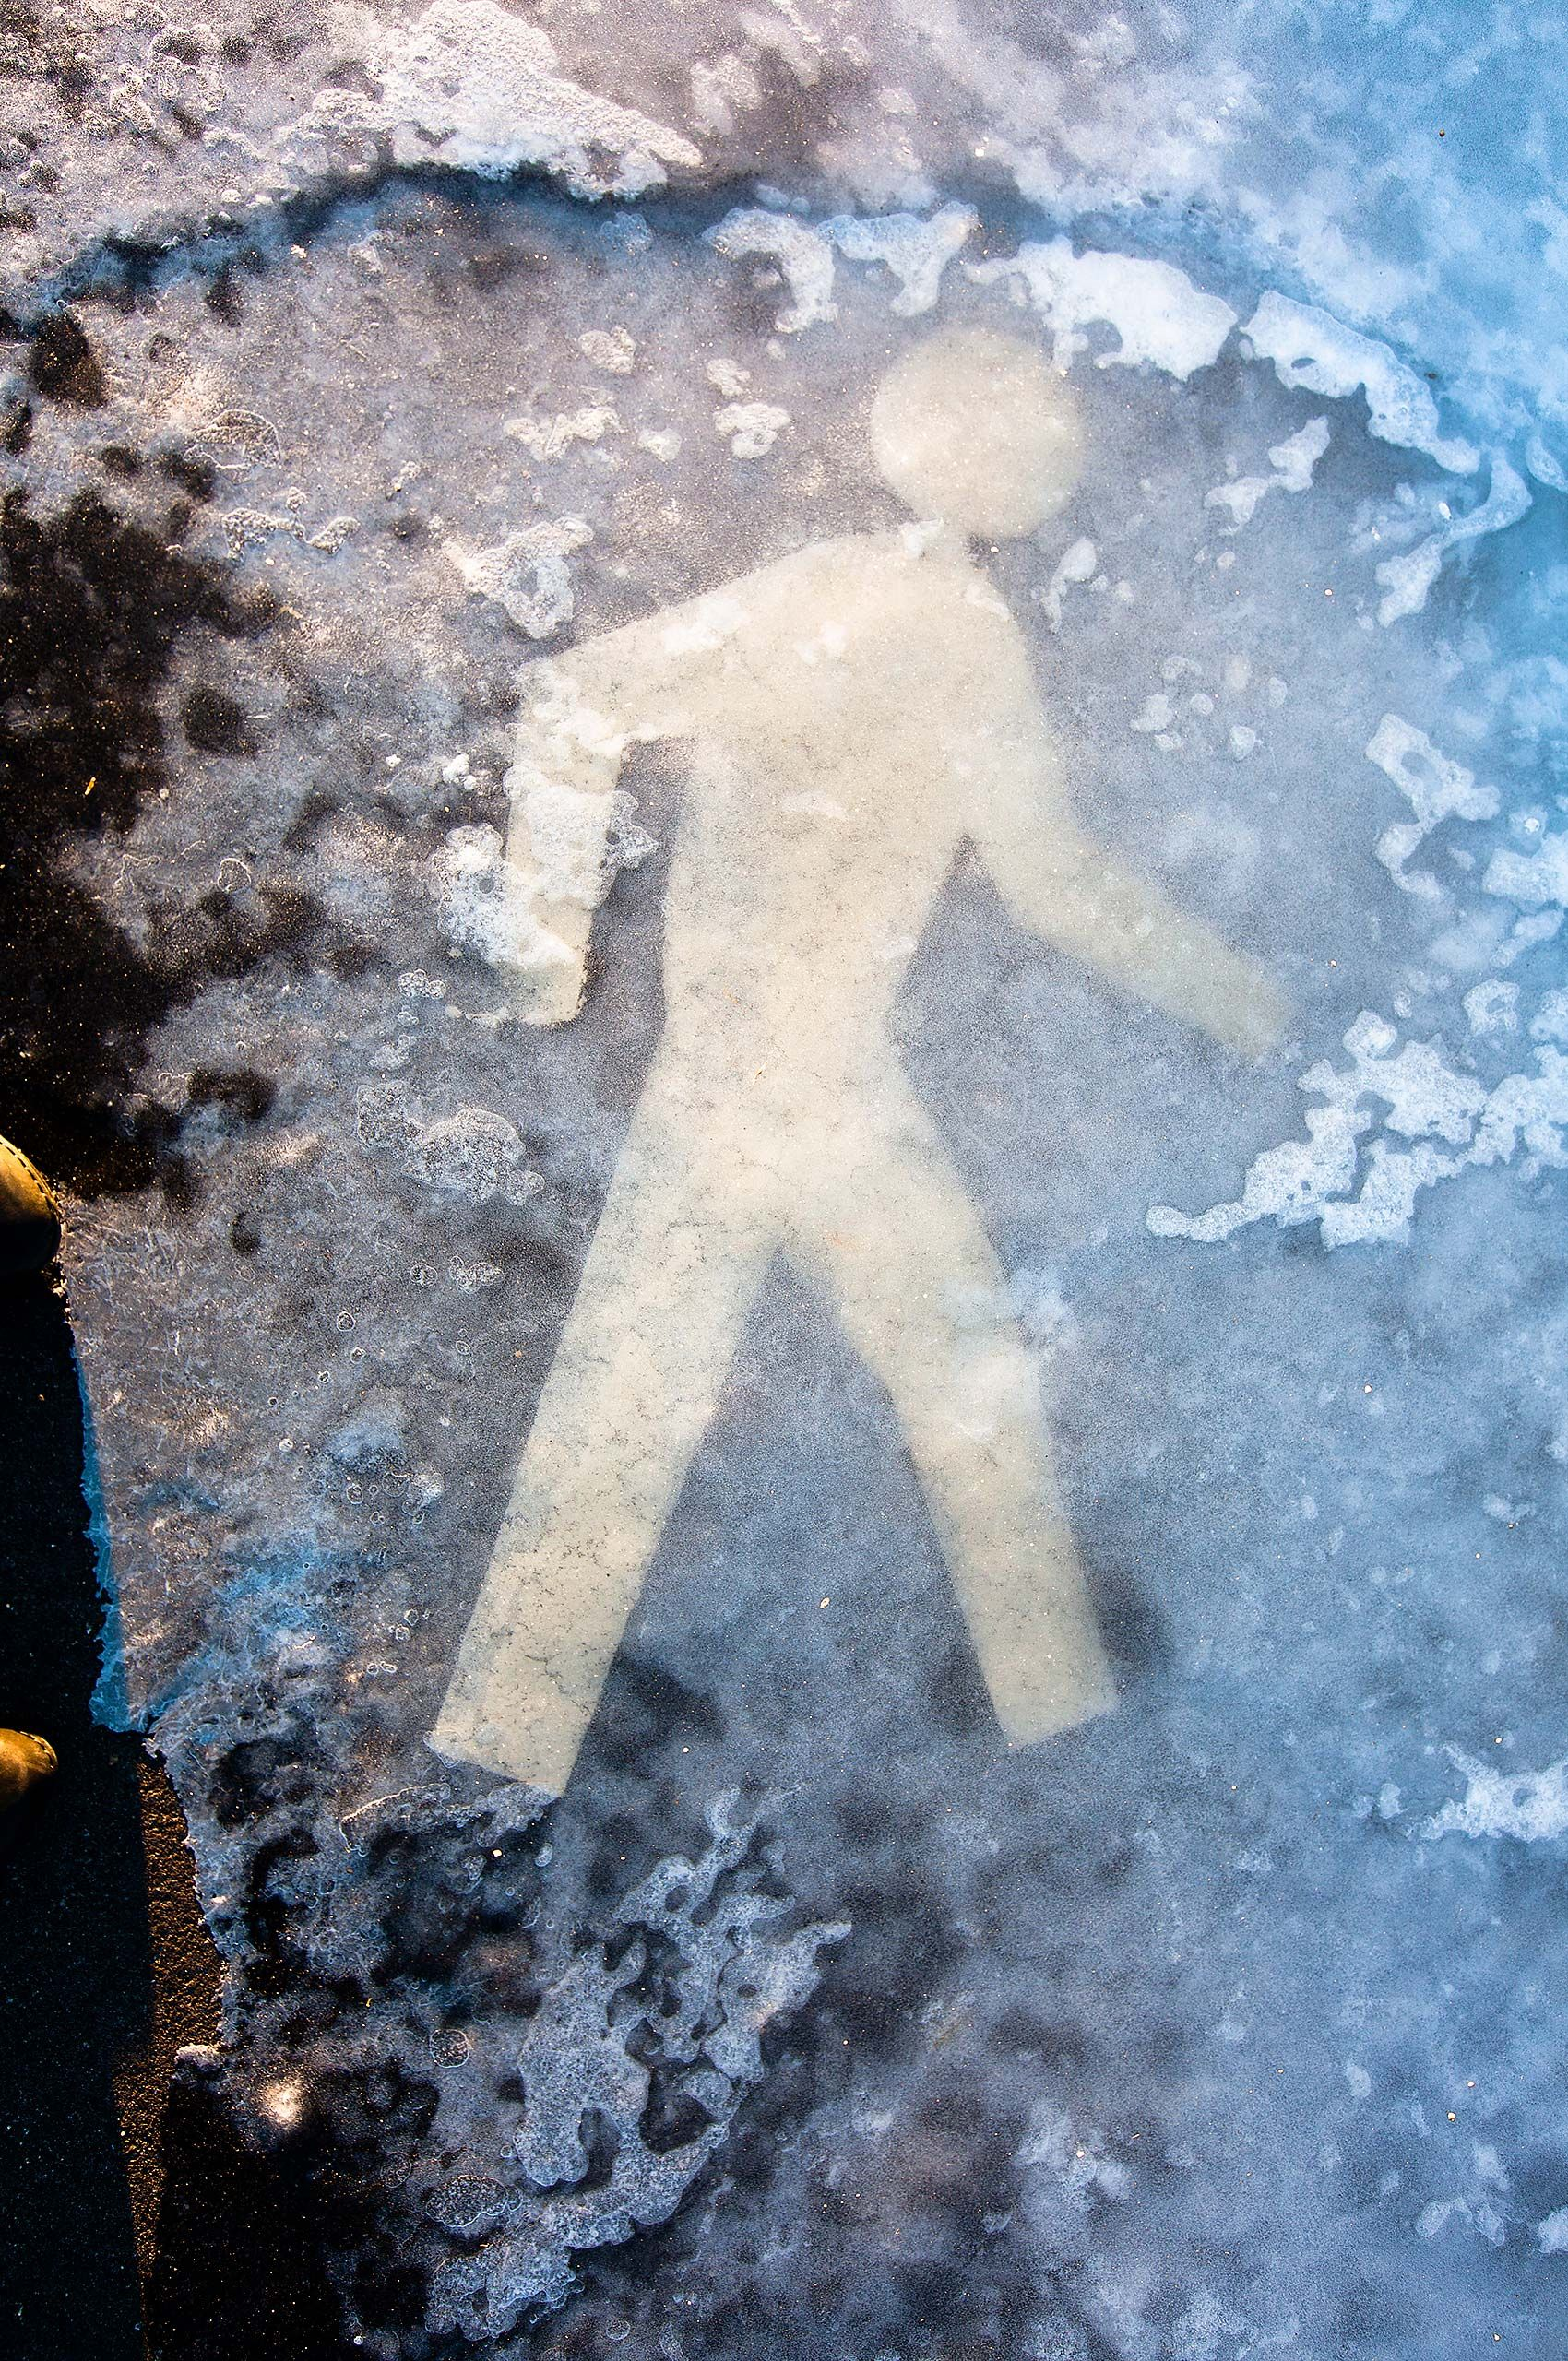 Pedestrian crossing icon man frozen in ice in winter in Manchester new Hampshire